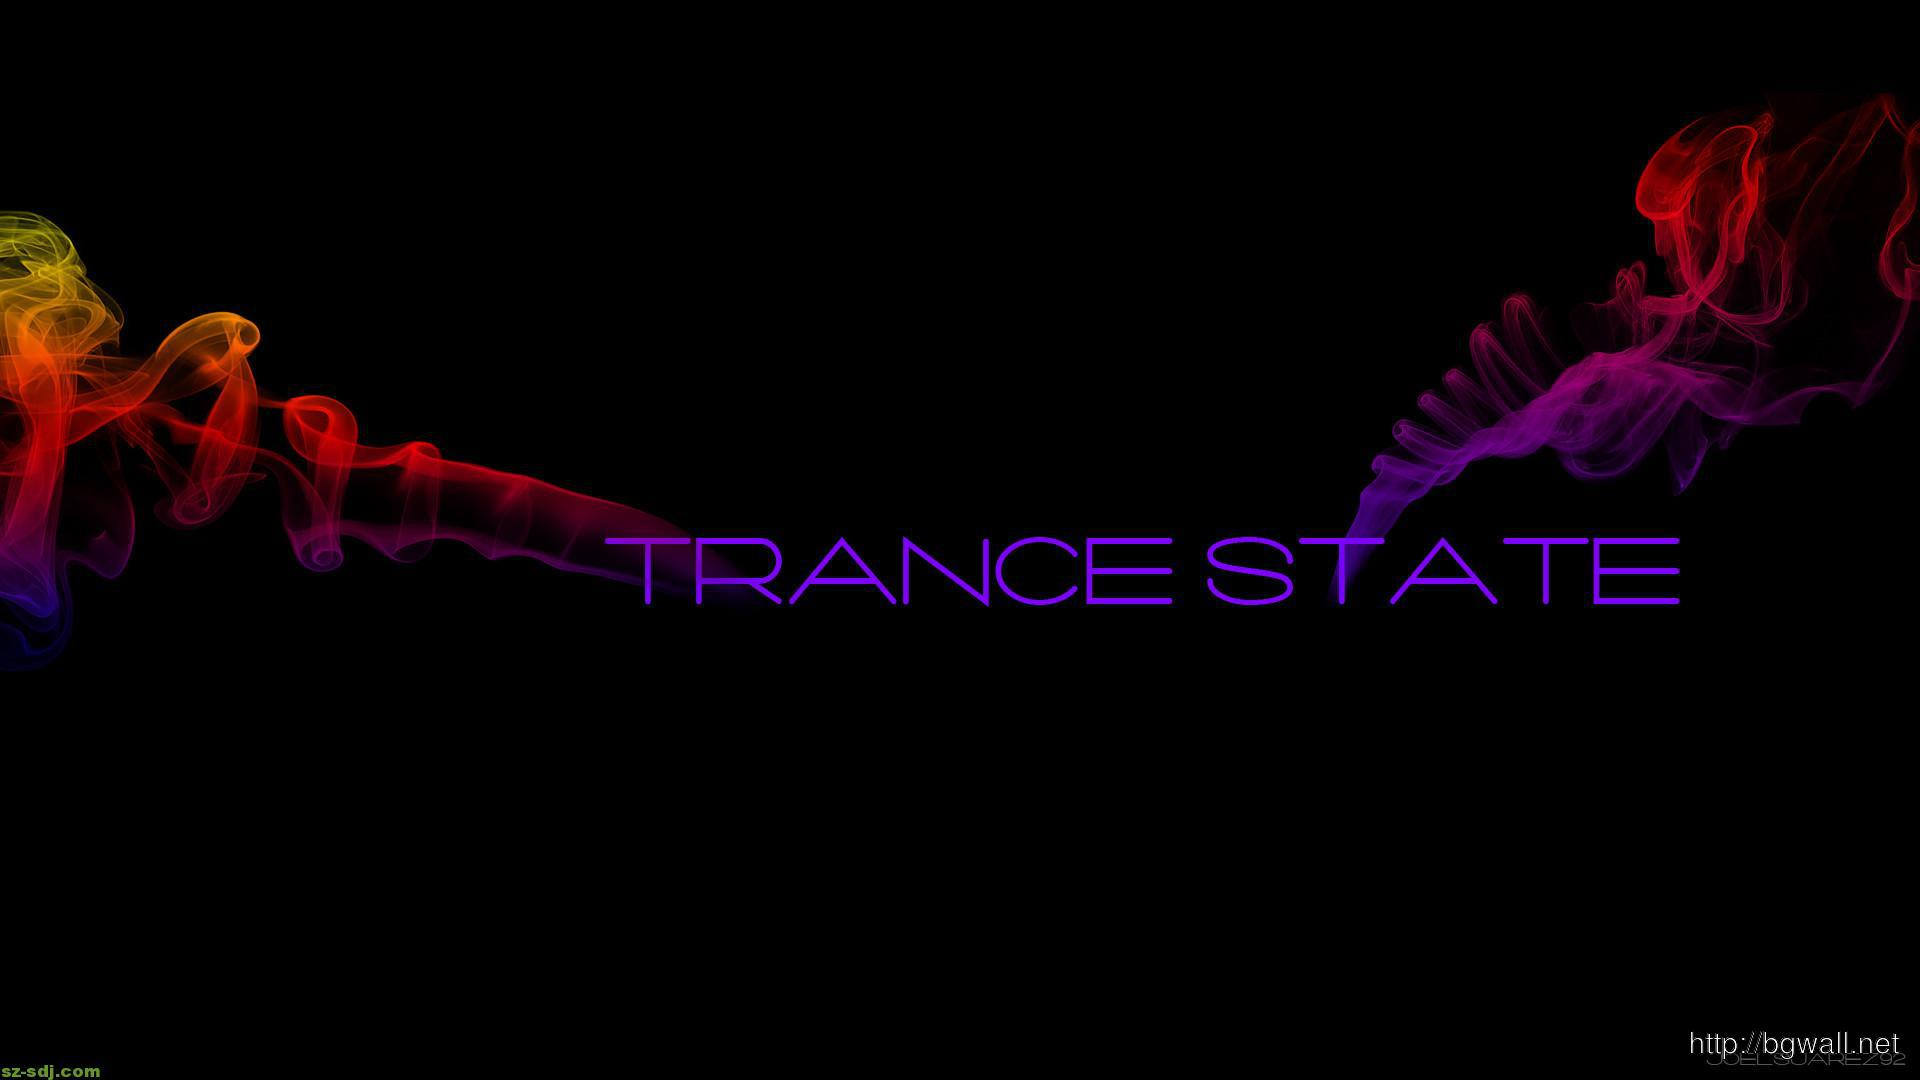 abstract-trance-state-wallpaper-computer